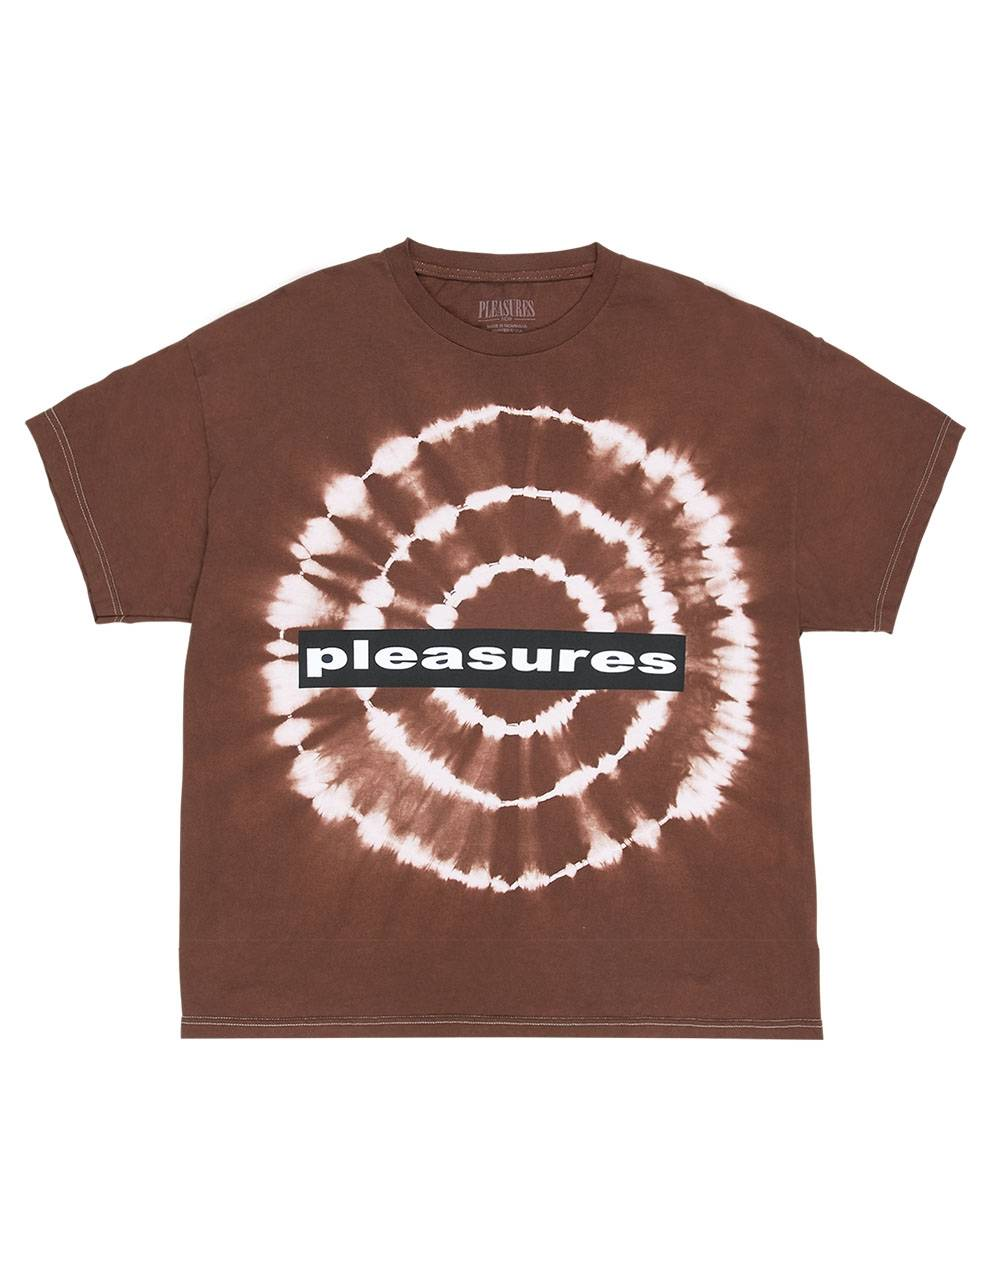 Pleasures Surrealism tye dye t-shirt - brown Pleasures T-shirt 60,00 €